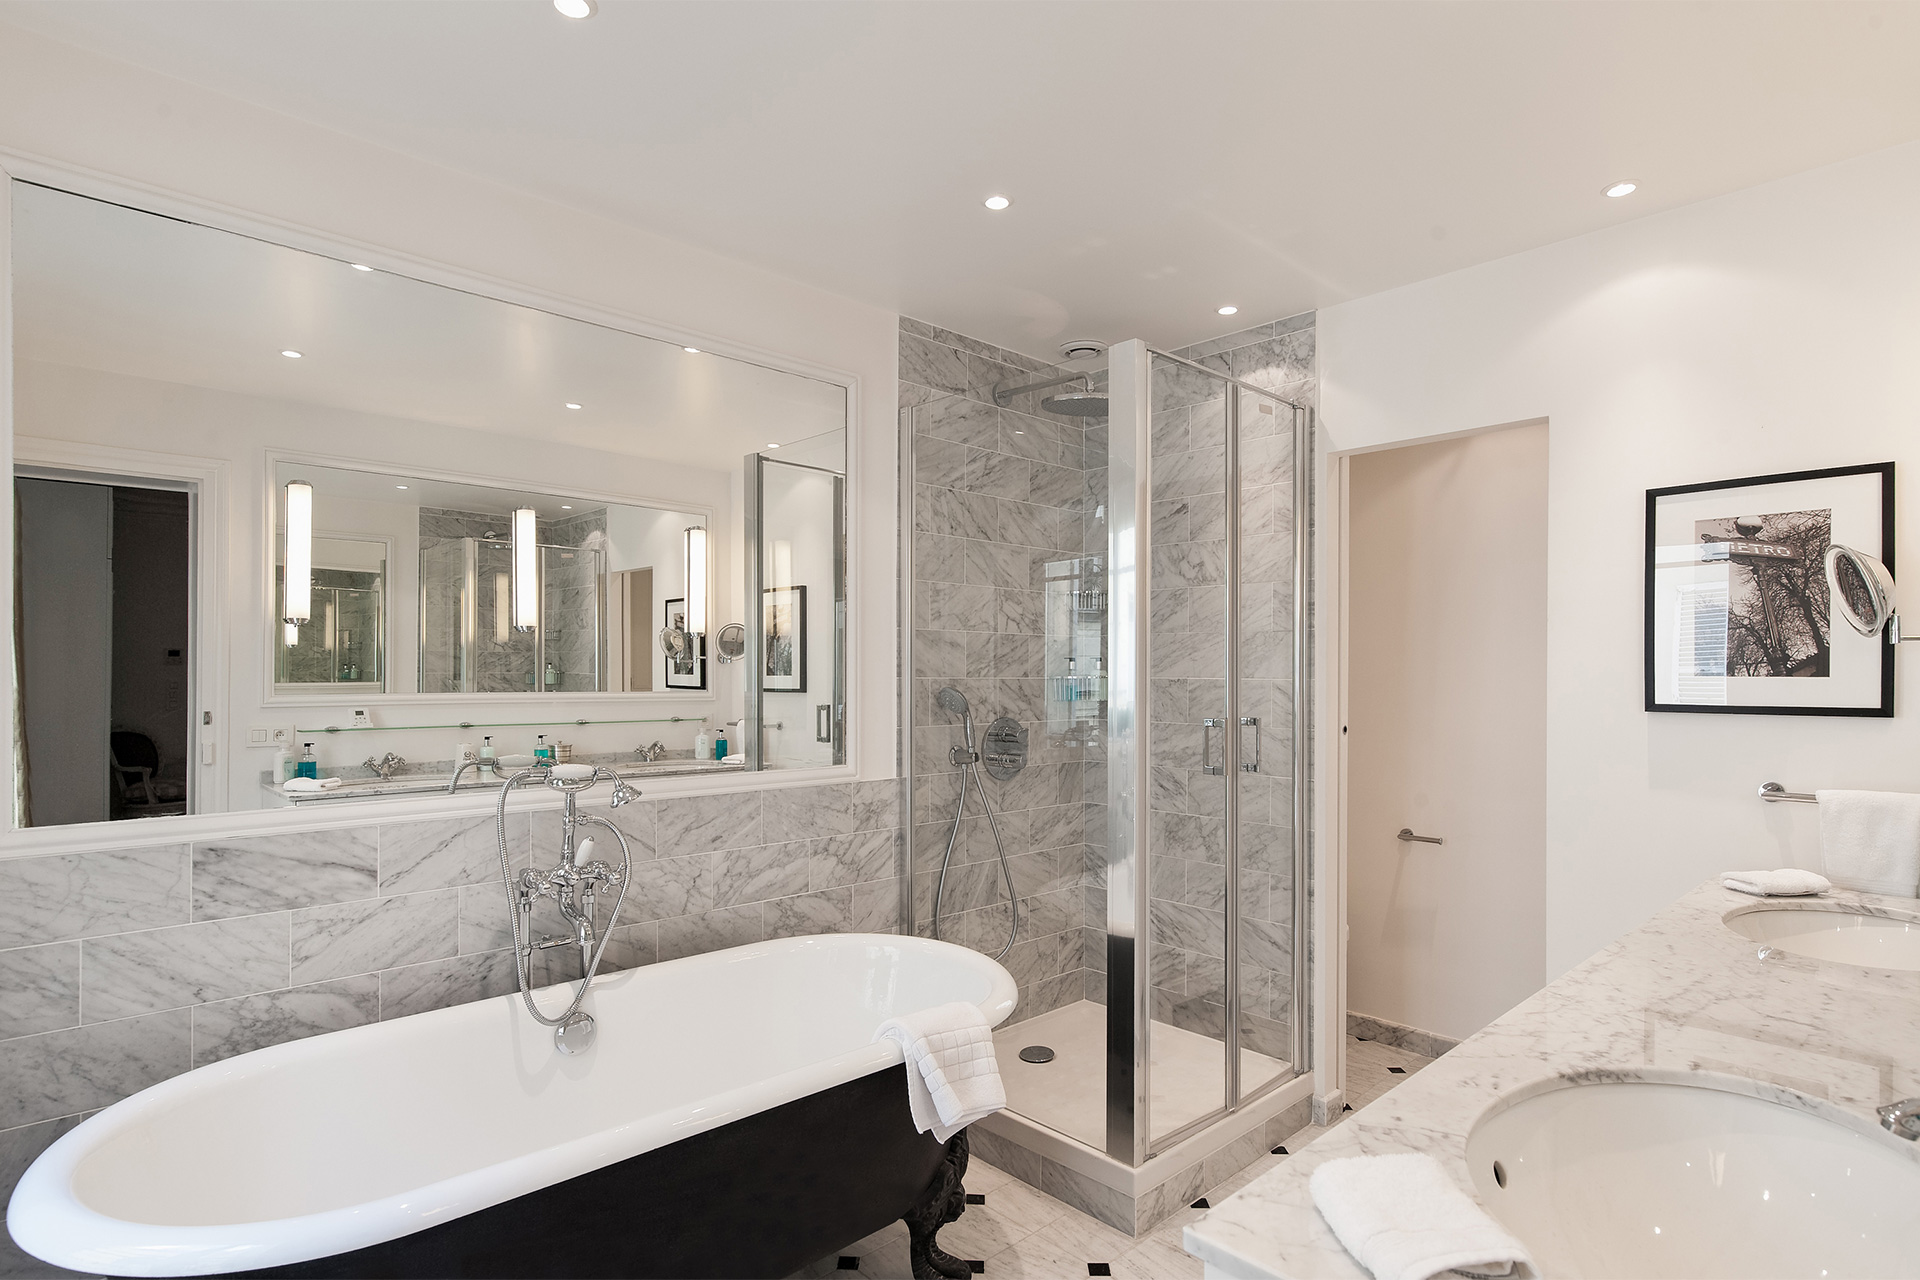 The main bathroom of the Montagny vacation rental offered by Paris Perfect